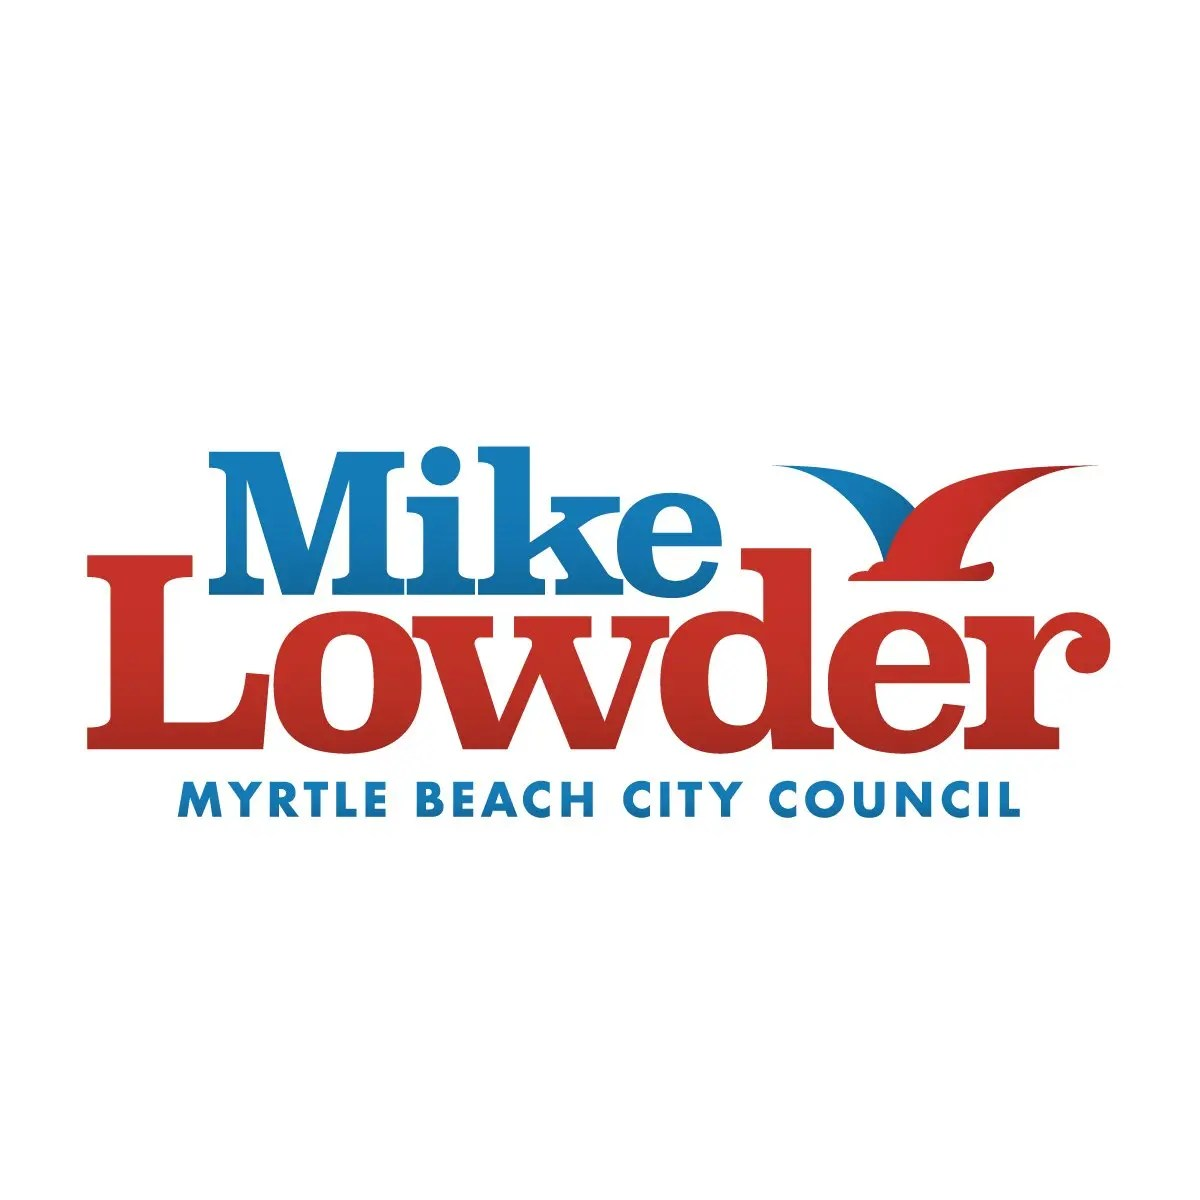 Mike Lowder - Myrtle Beach City Council Logo design by Design Cypher